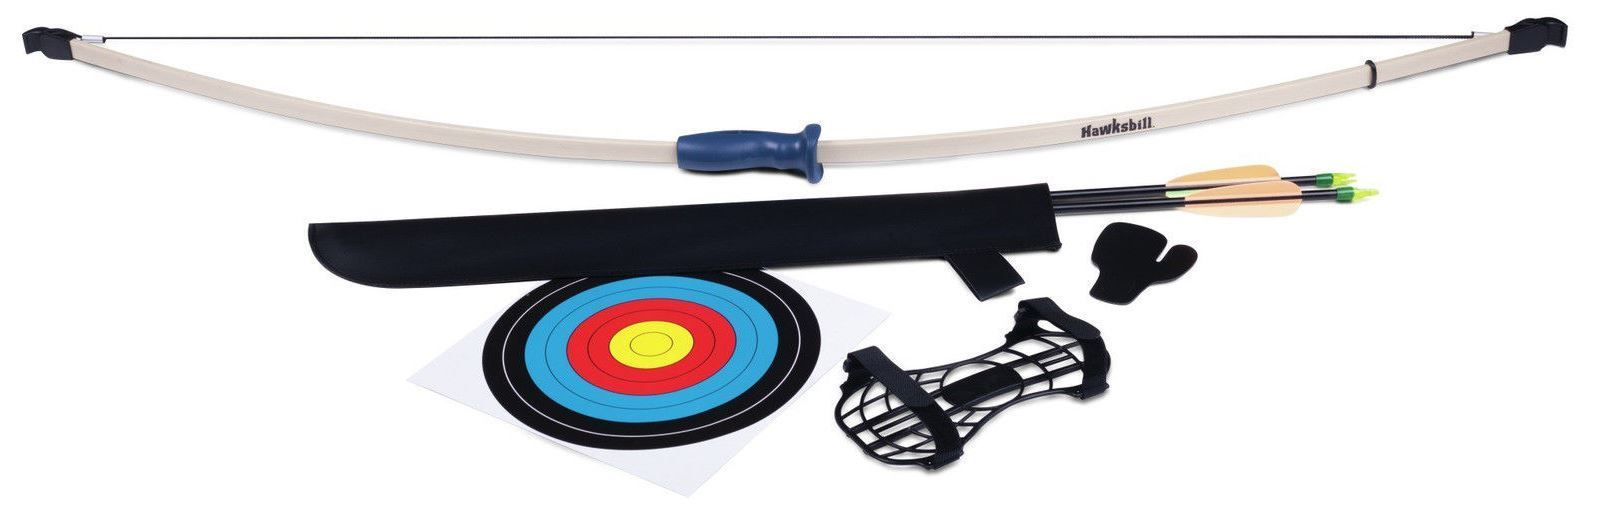 Crosman Hawksbill youth recurve bow - reid outdoors